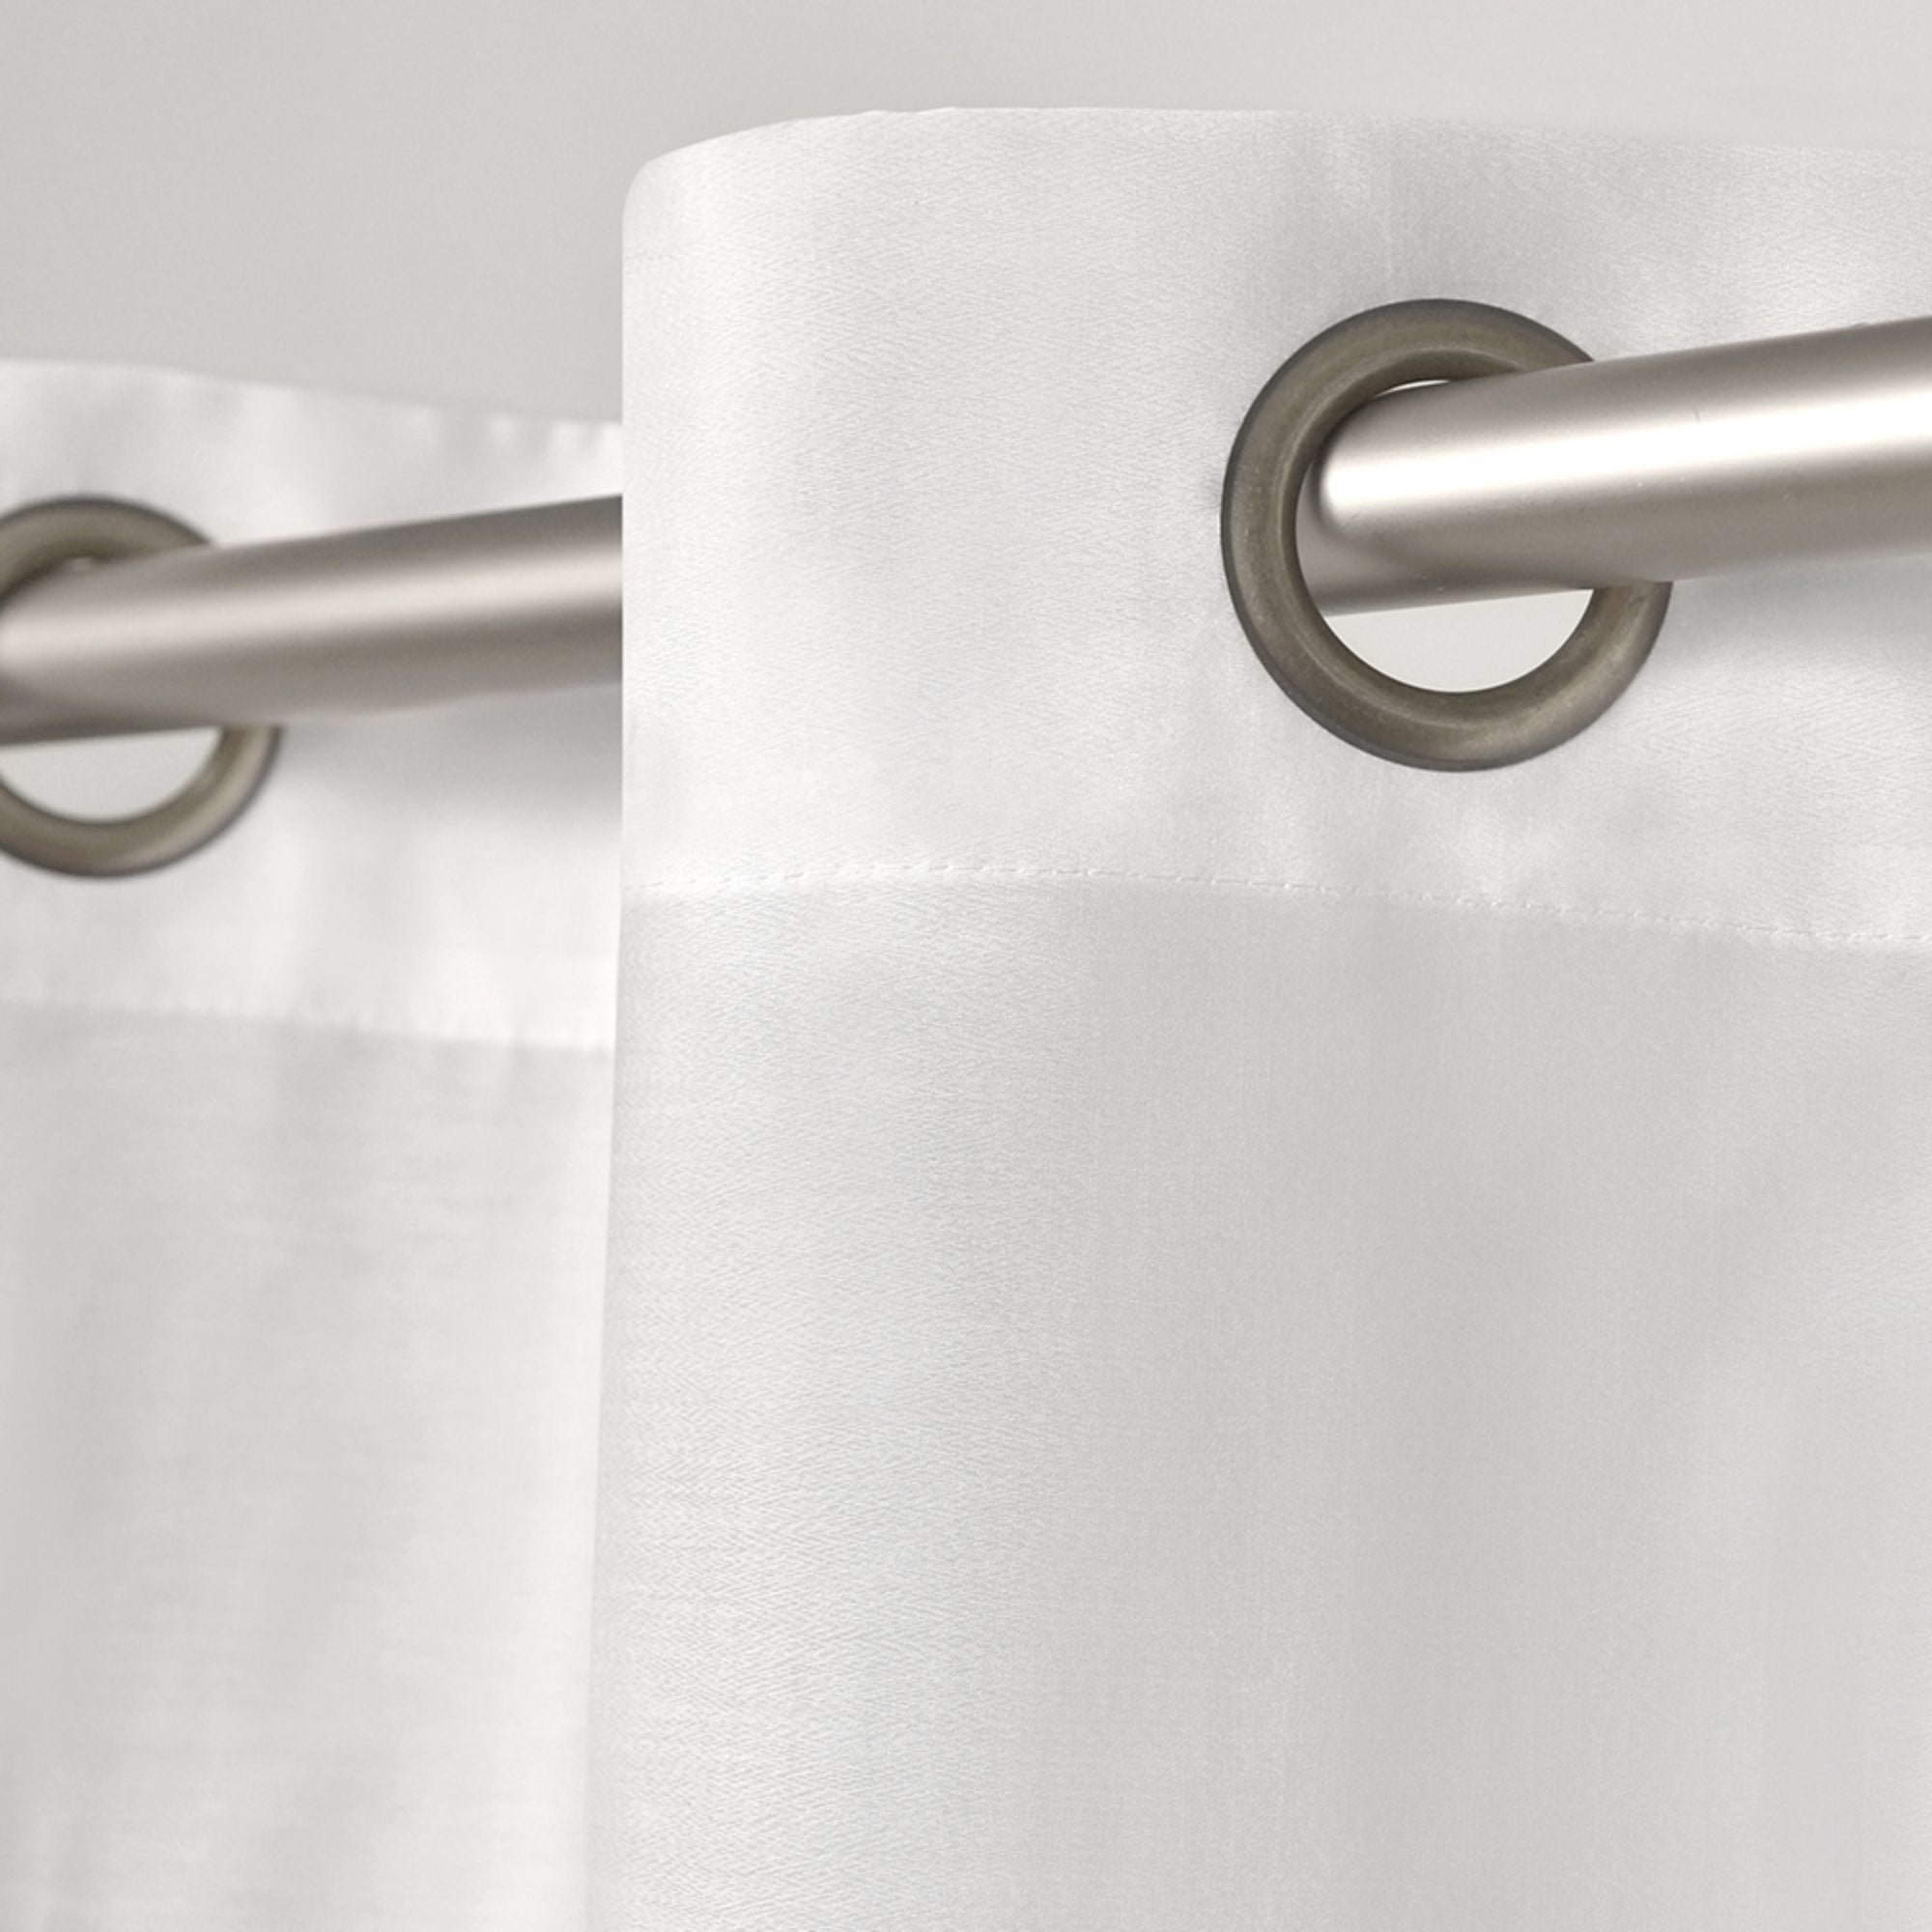 Ati Home Wilshire Burnout Grommet Top Curtain Panel Pair Intended For Wilshire Burnout Grommet Top Curtain Panel Pairs (View 3 of 30)